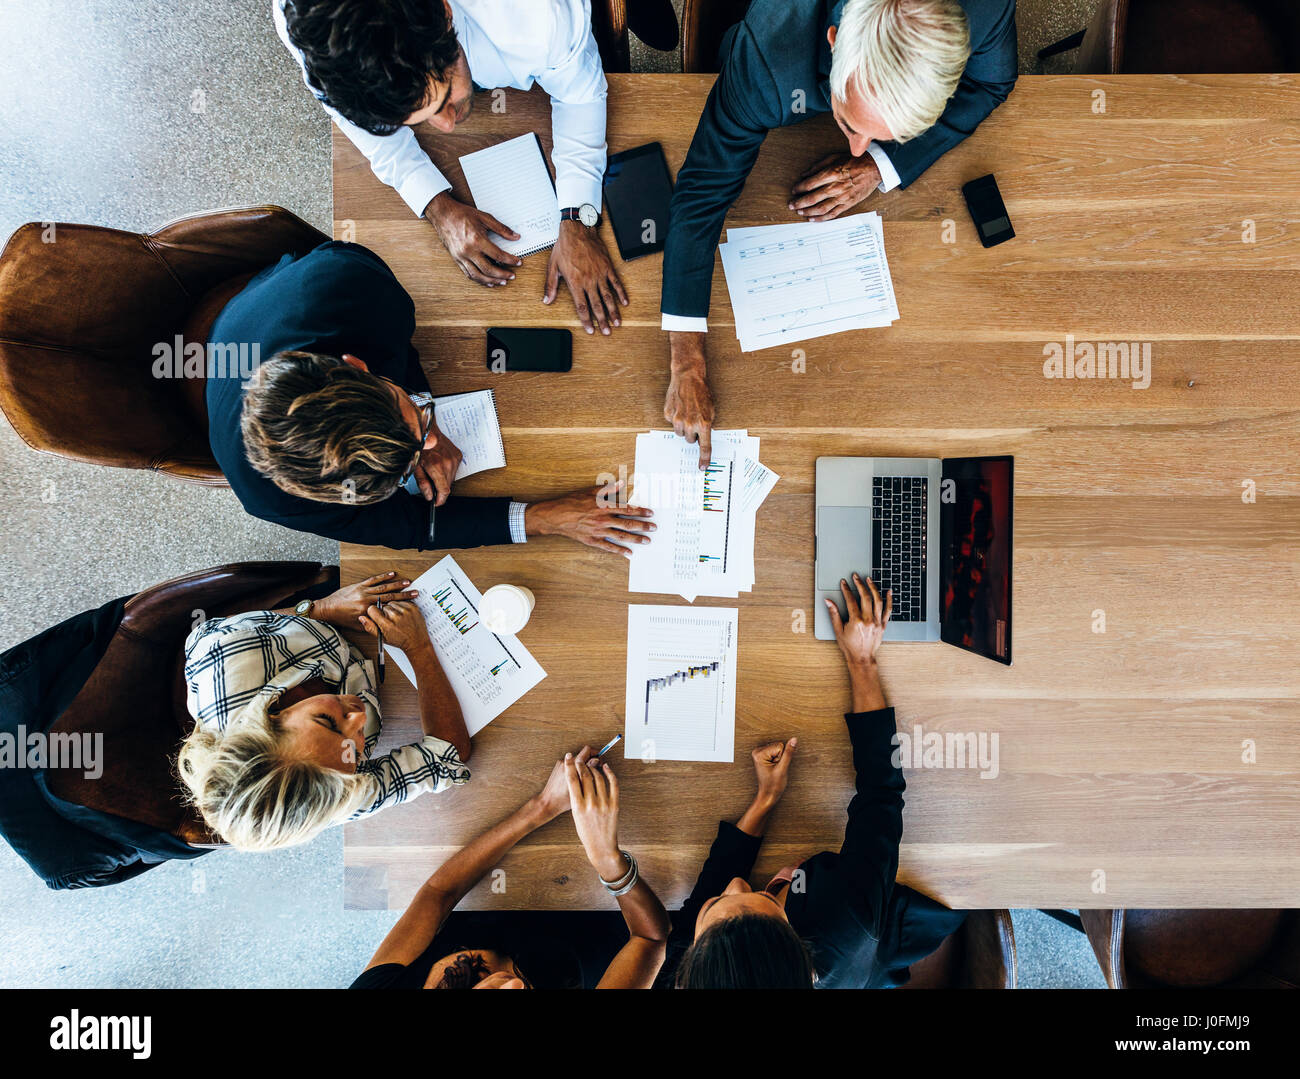 Team of business people sitting together in discussion. Top view shot of business colleagues discussing financial - Stock Image